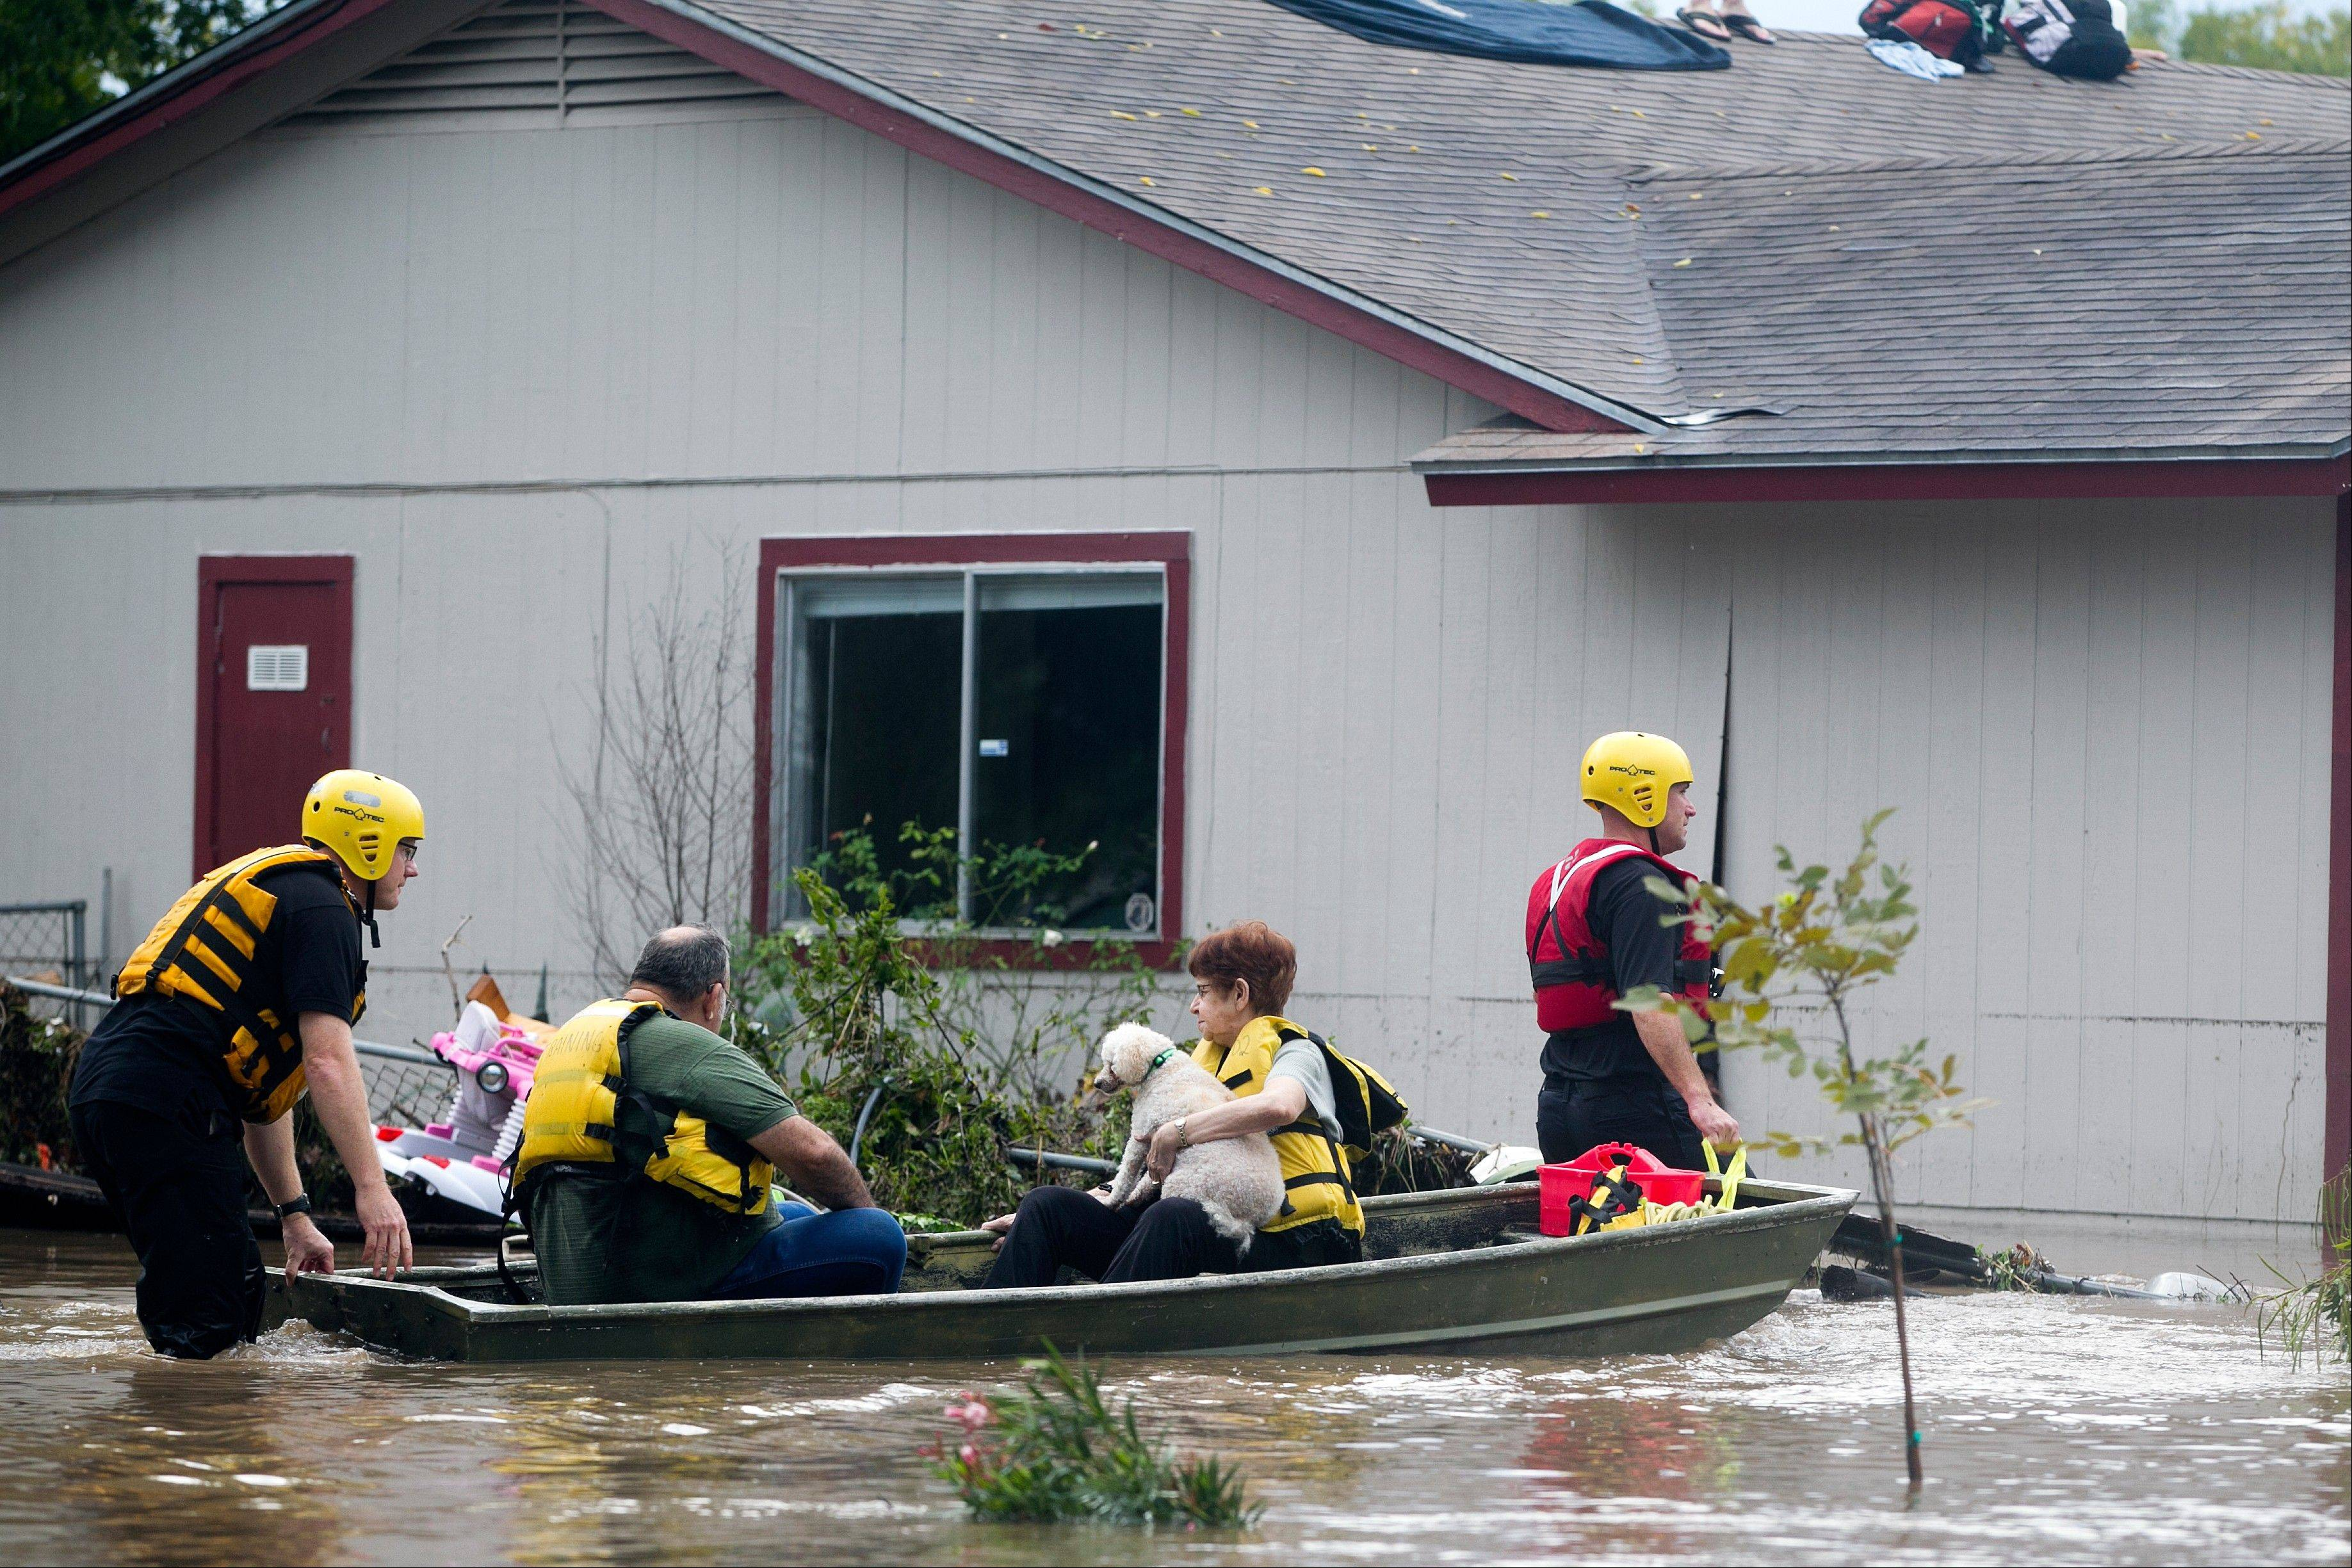 People are rescued from a home�s rooftop in Austin, Texas, Thursday after heavy overnight rains brought flooding to the area. The National Weather Service said more than a foot of rain fell in Central Texas.